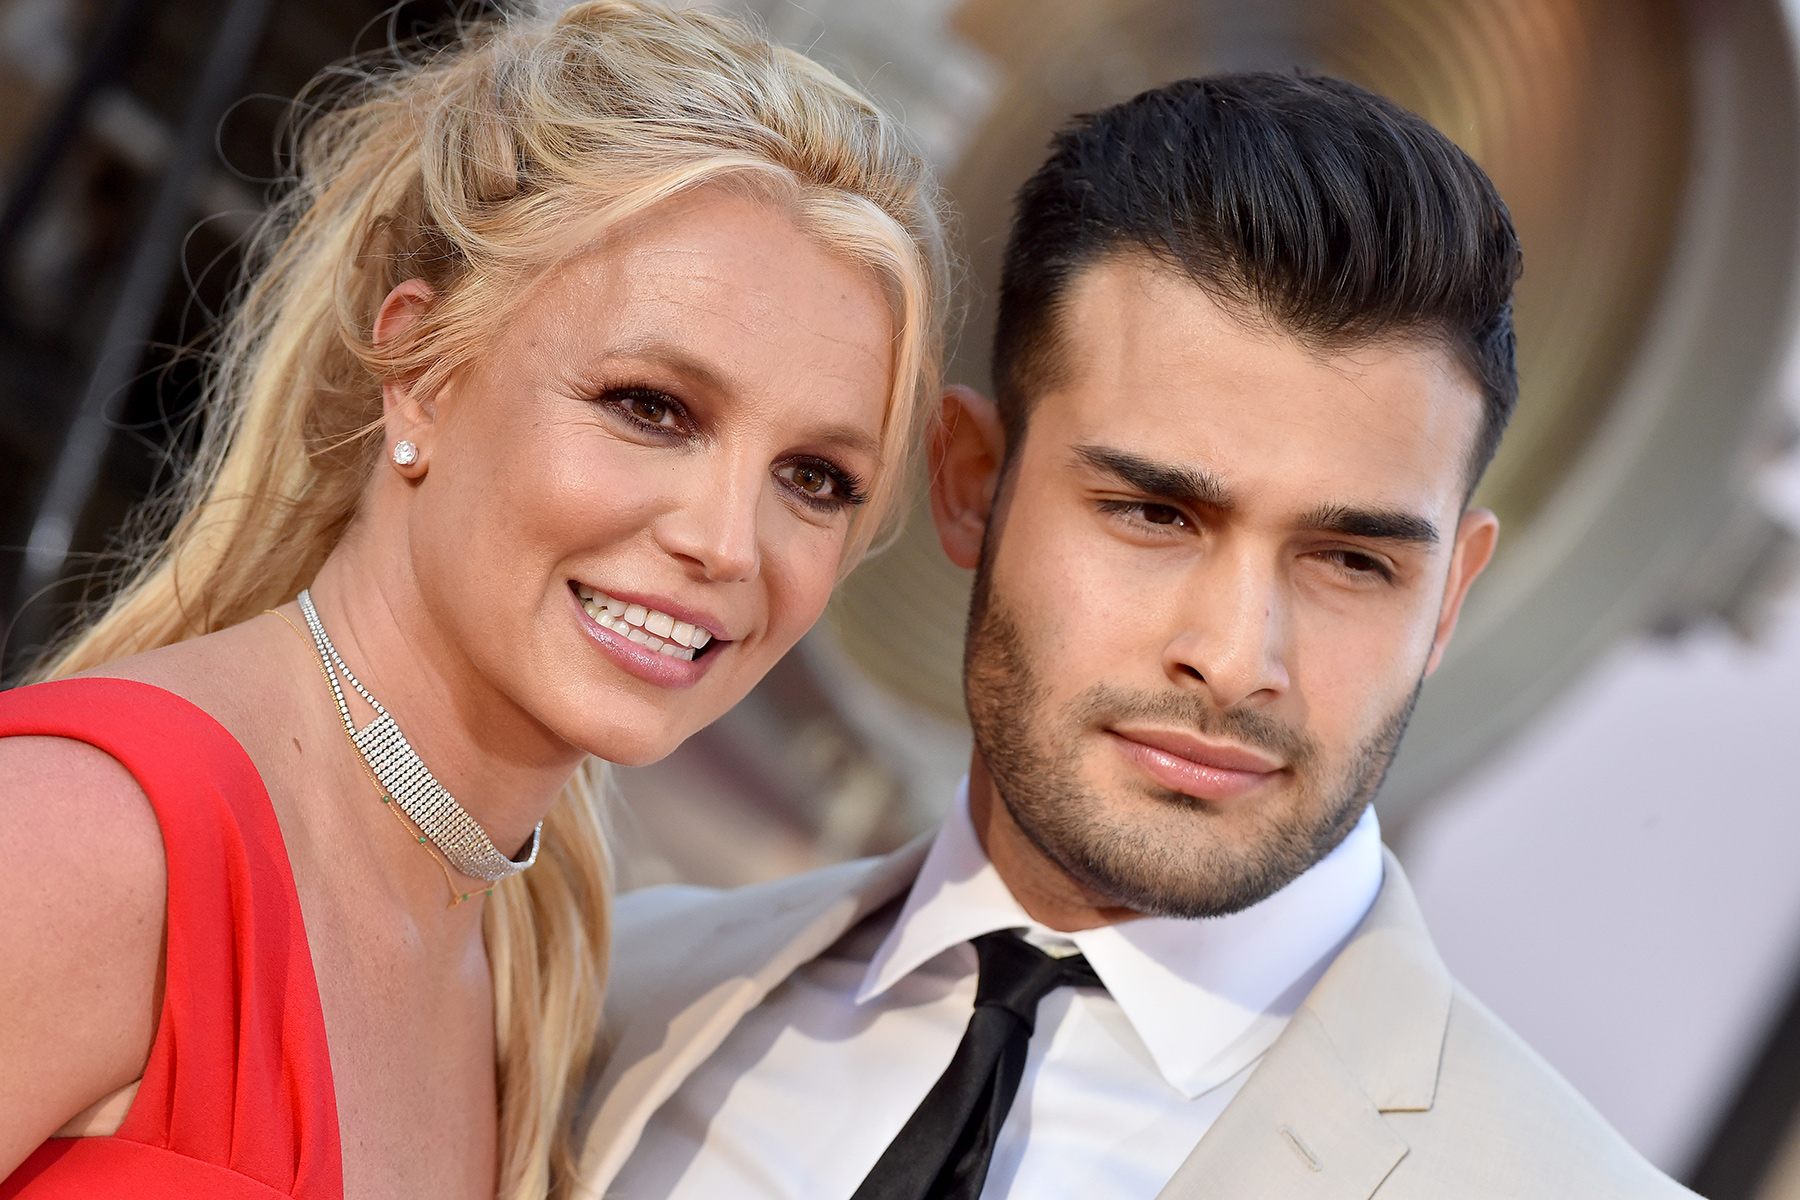 """HOLLYWOOD, CALIFORNIA - JULY 22: Britney Spears and Sam Asghari attend Sony Pictures' """"Once Upon a Time ... in Hollywood"""" Los Angeles Premiere on July 22, 2019 in Hollywood, California. (Photo by Axelle/Bauer-Griffin/FilmMagic)"""